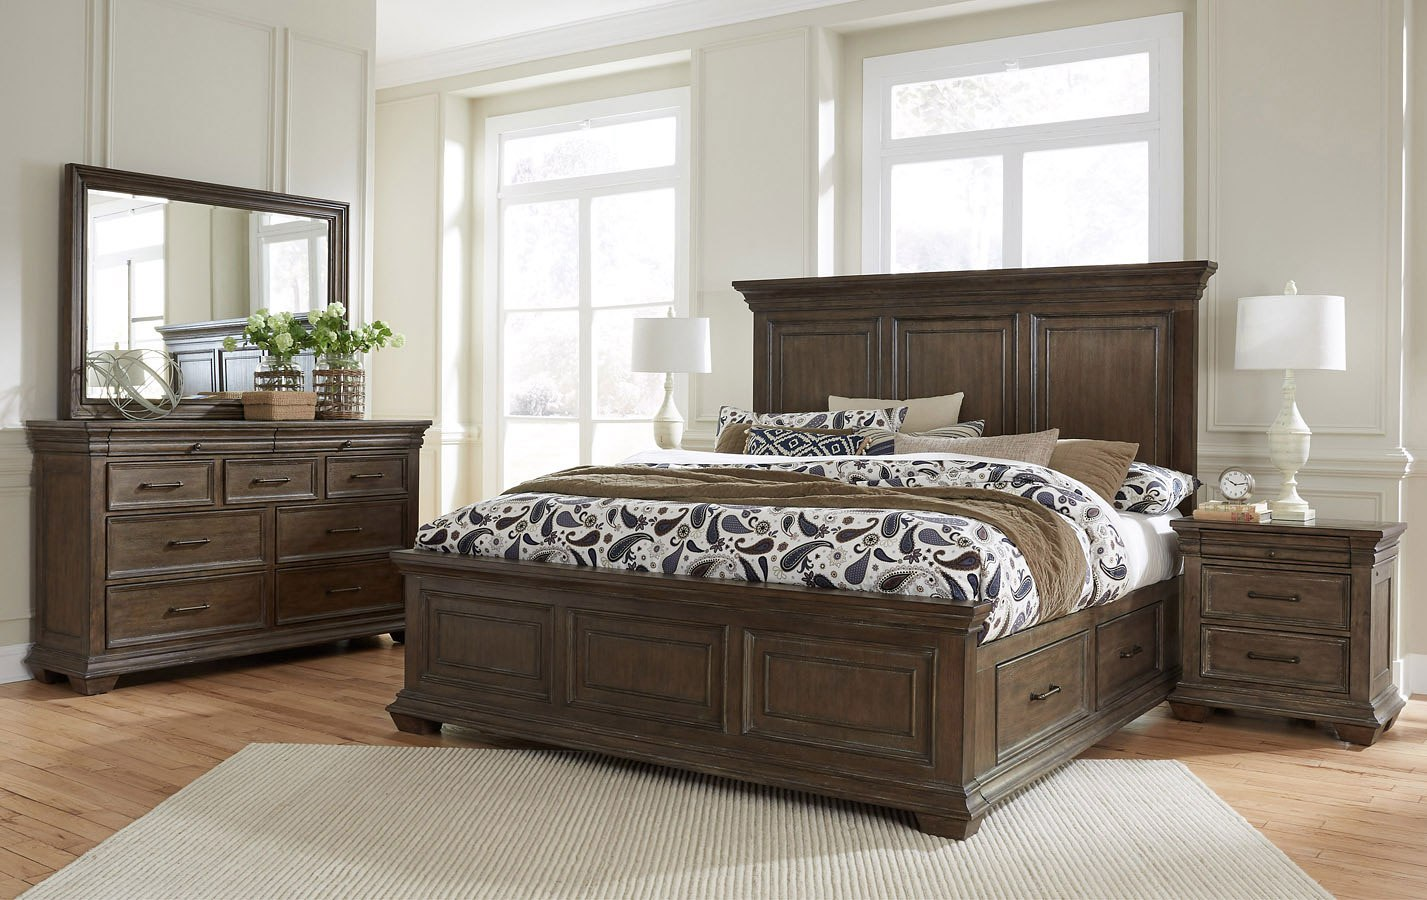 Camden Storage Bedroom Set Samuel Lawrence Furniture